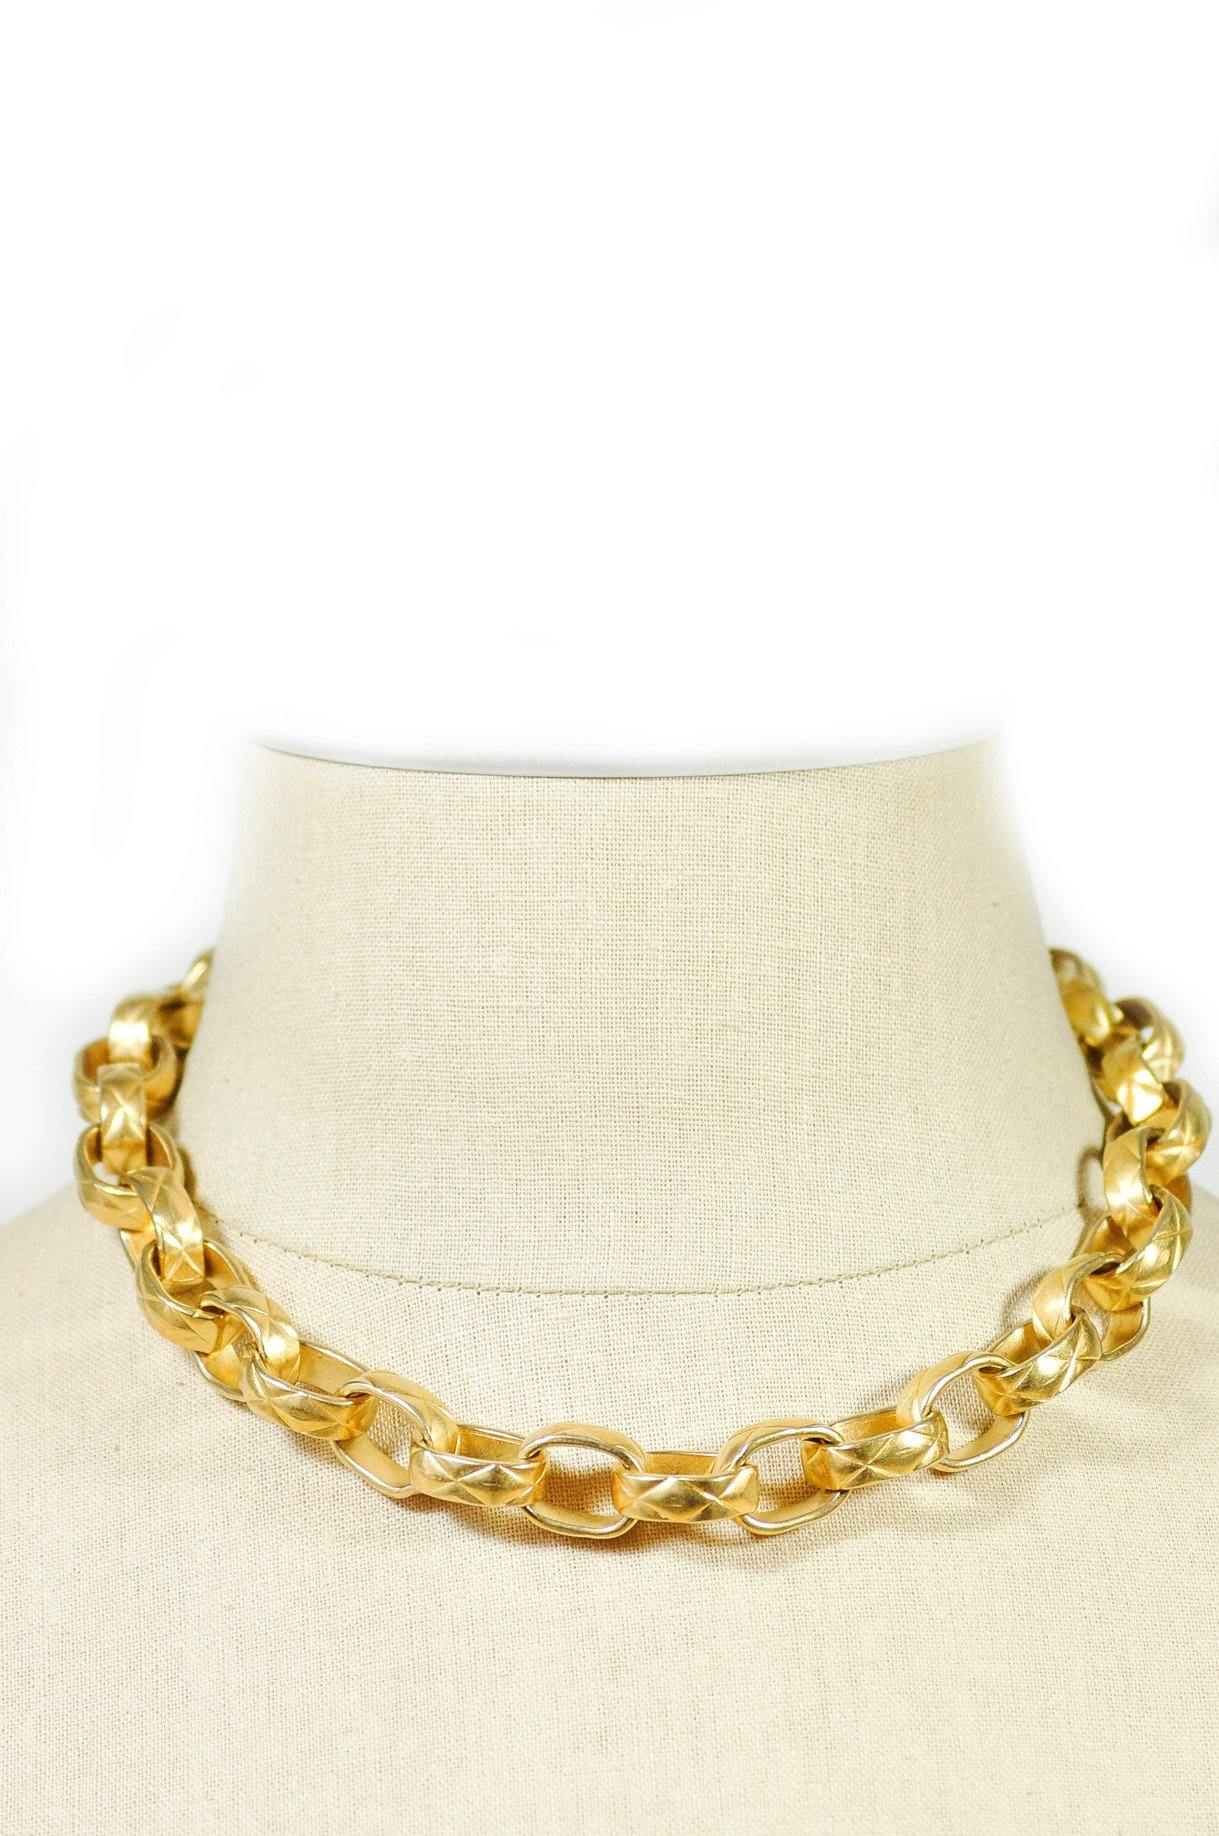 80's__Erwin Pearl__Chunky Chain Necklace